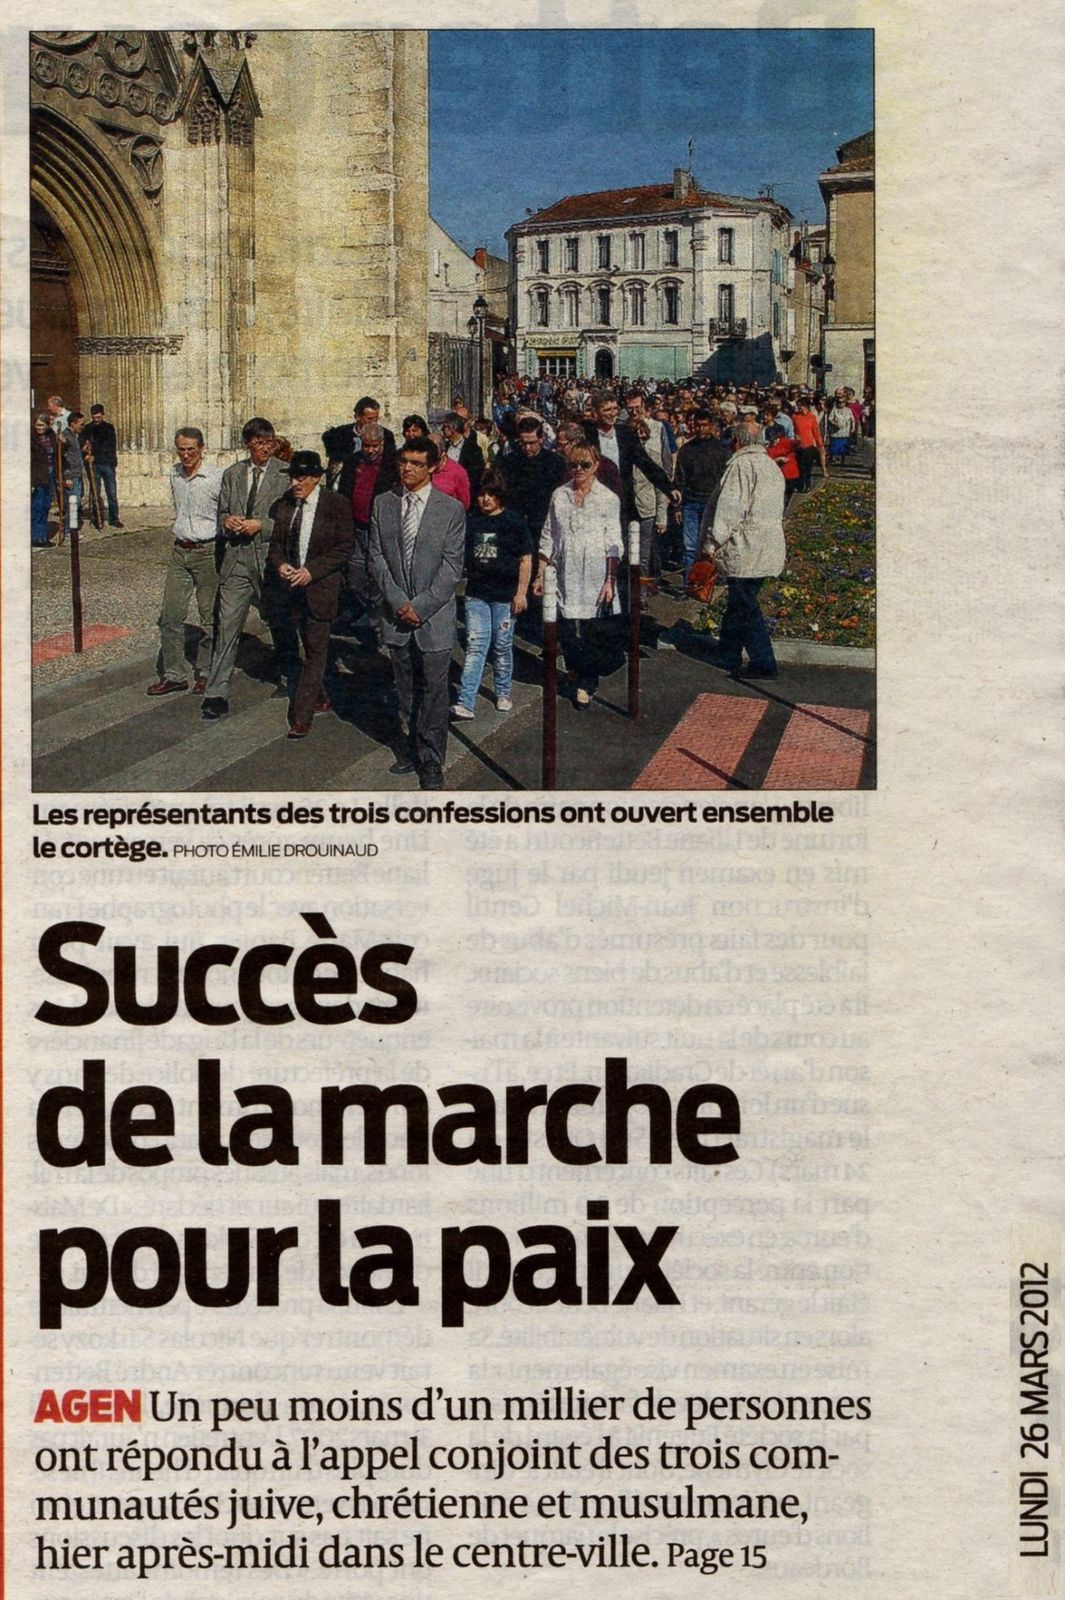 Sud-Ouest (26-03-2012)